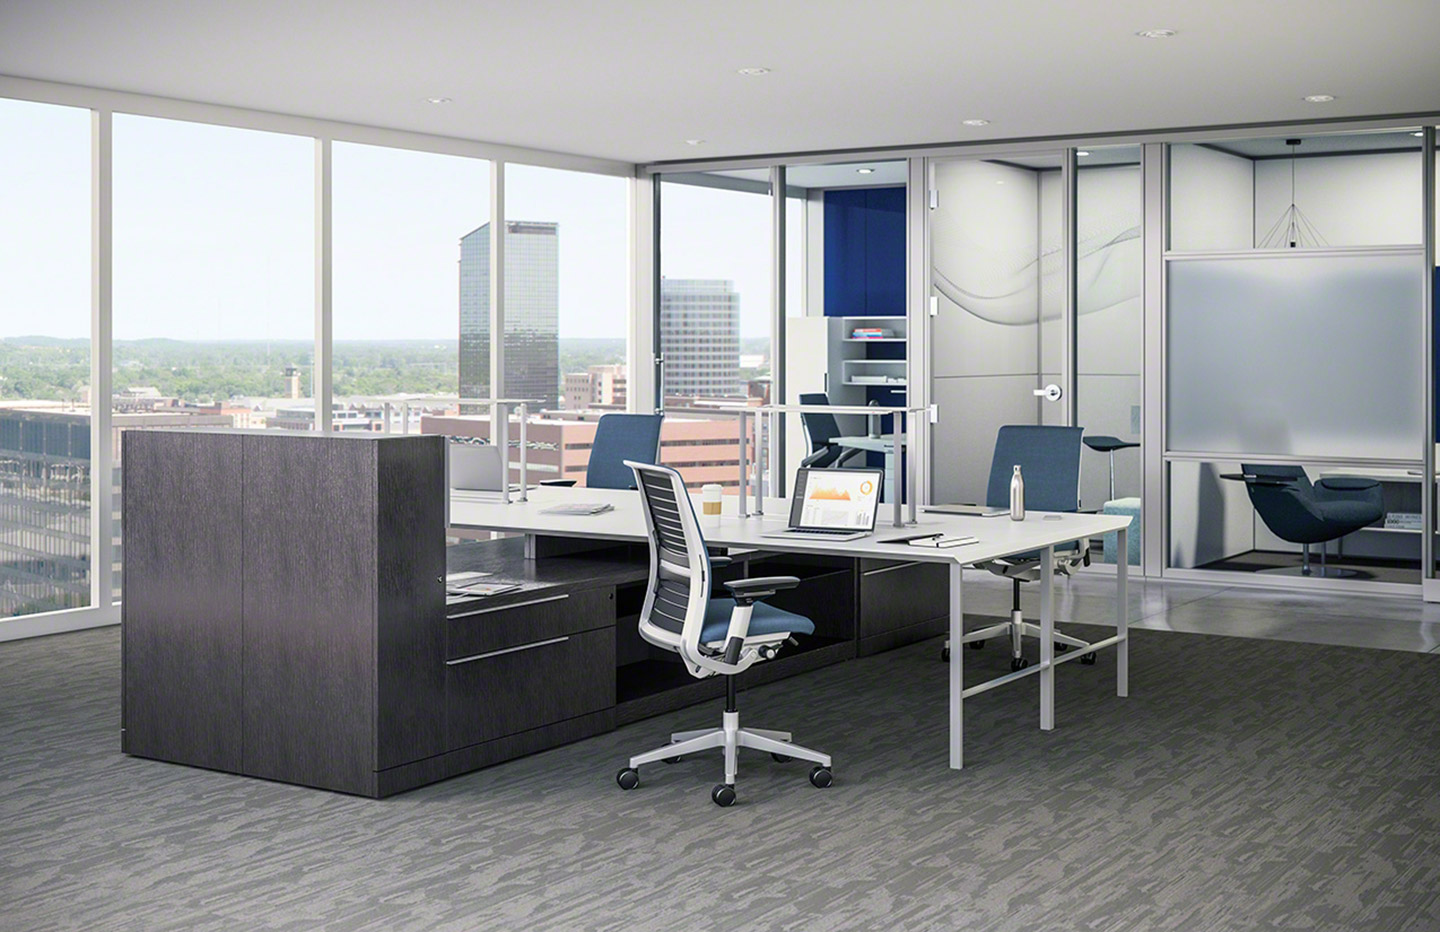 5 Reasons You Need a Well-Designed Office Space